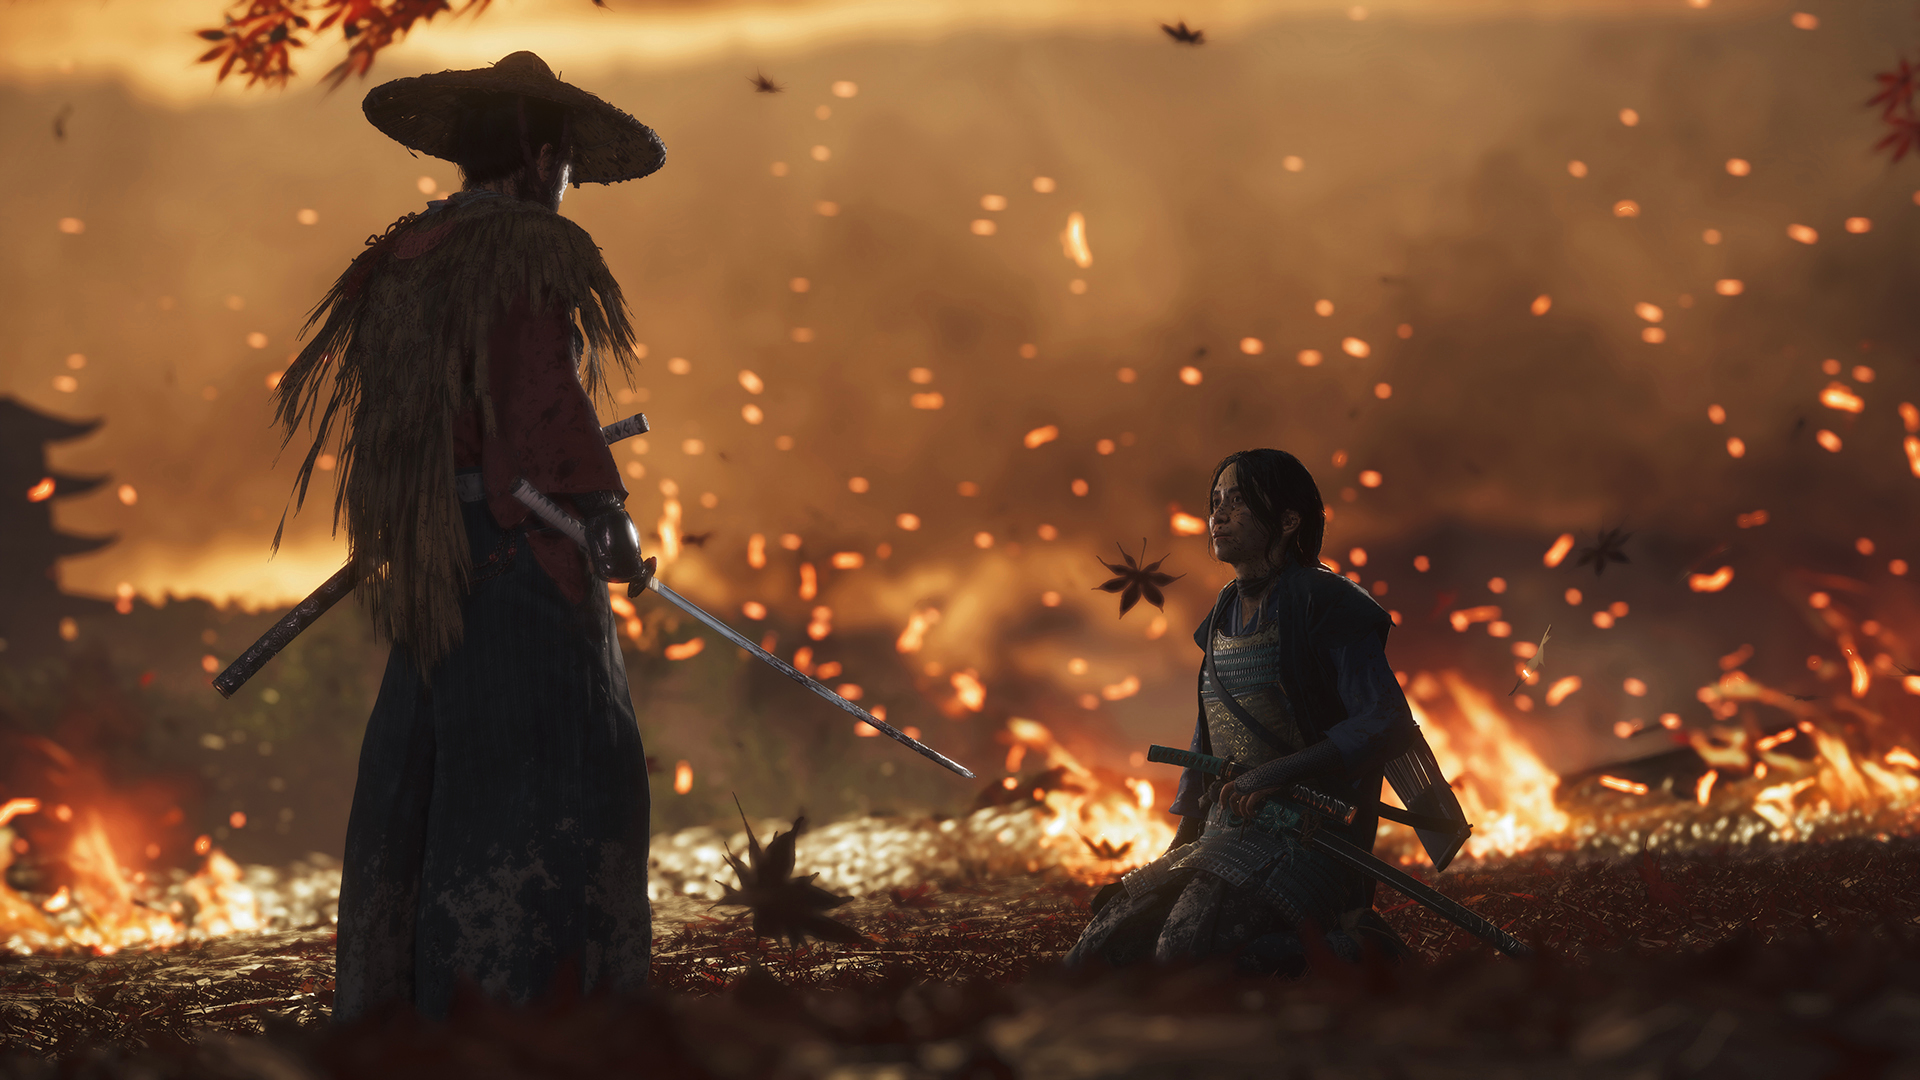 Sony CEO Praises Sucker Punch For Being 'A Poster Child For Organic Growth' Following Ghost Of Tsushima's Success